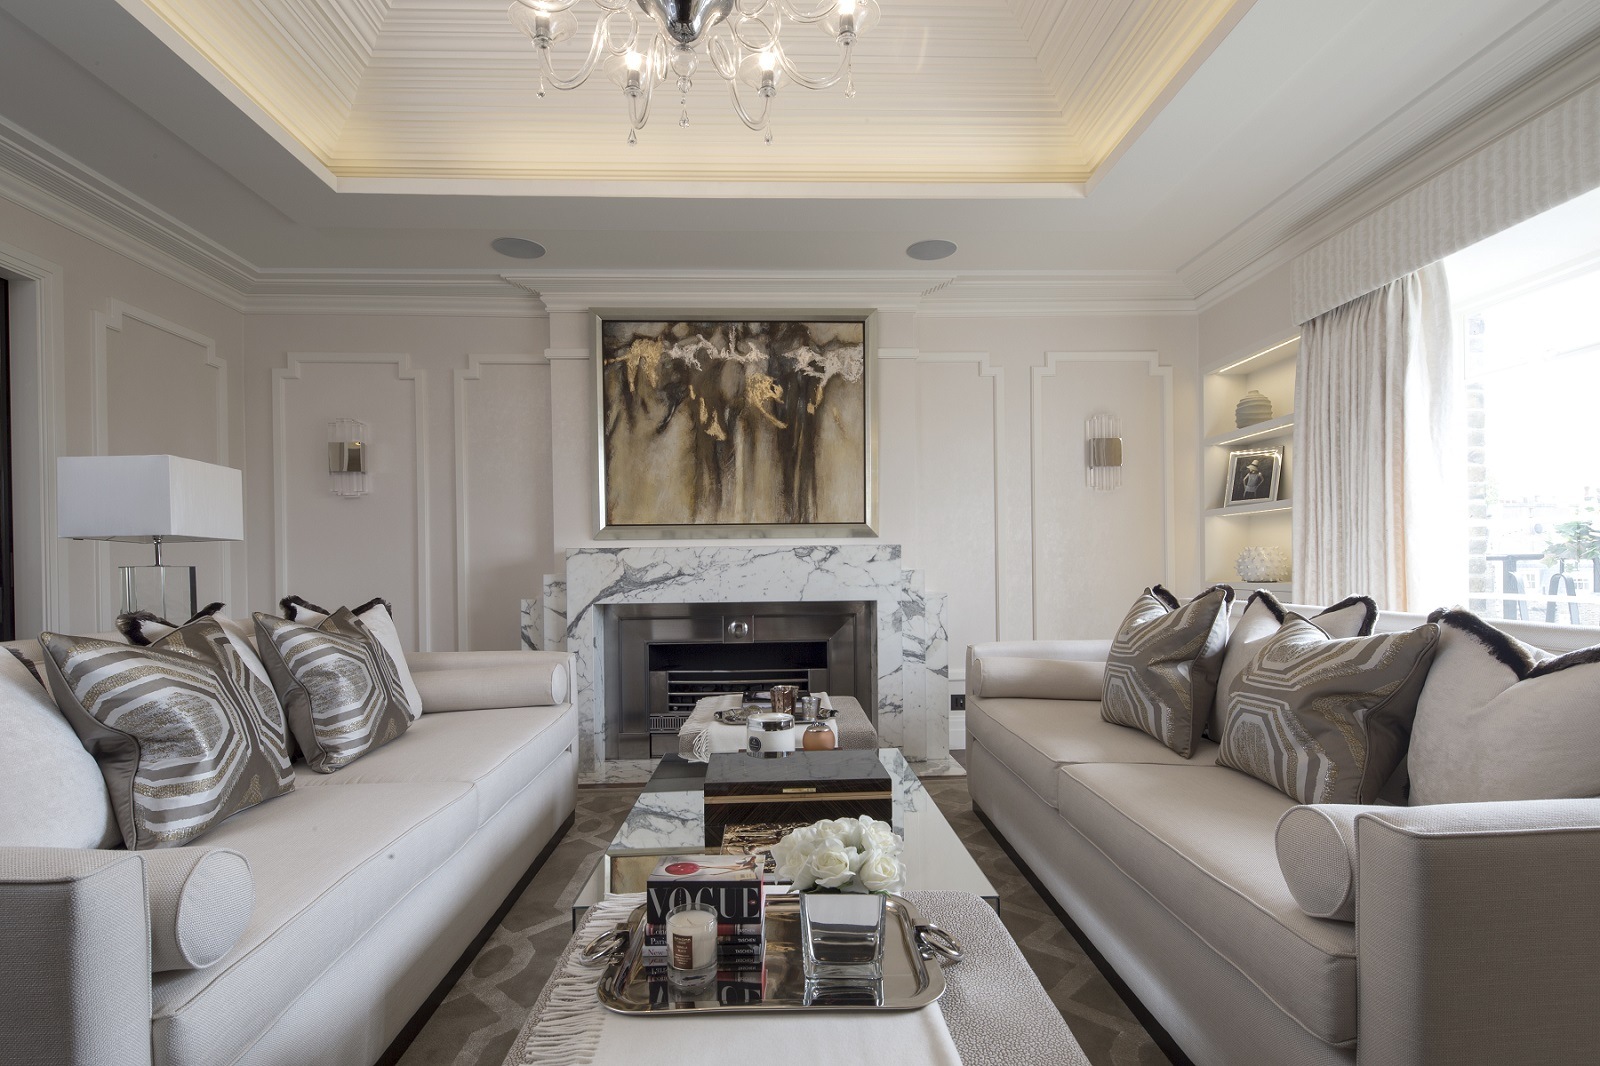 Apartment for Sale at Eaton Square, Belgravia SW1 London, England, United Kingdom